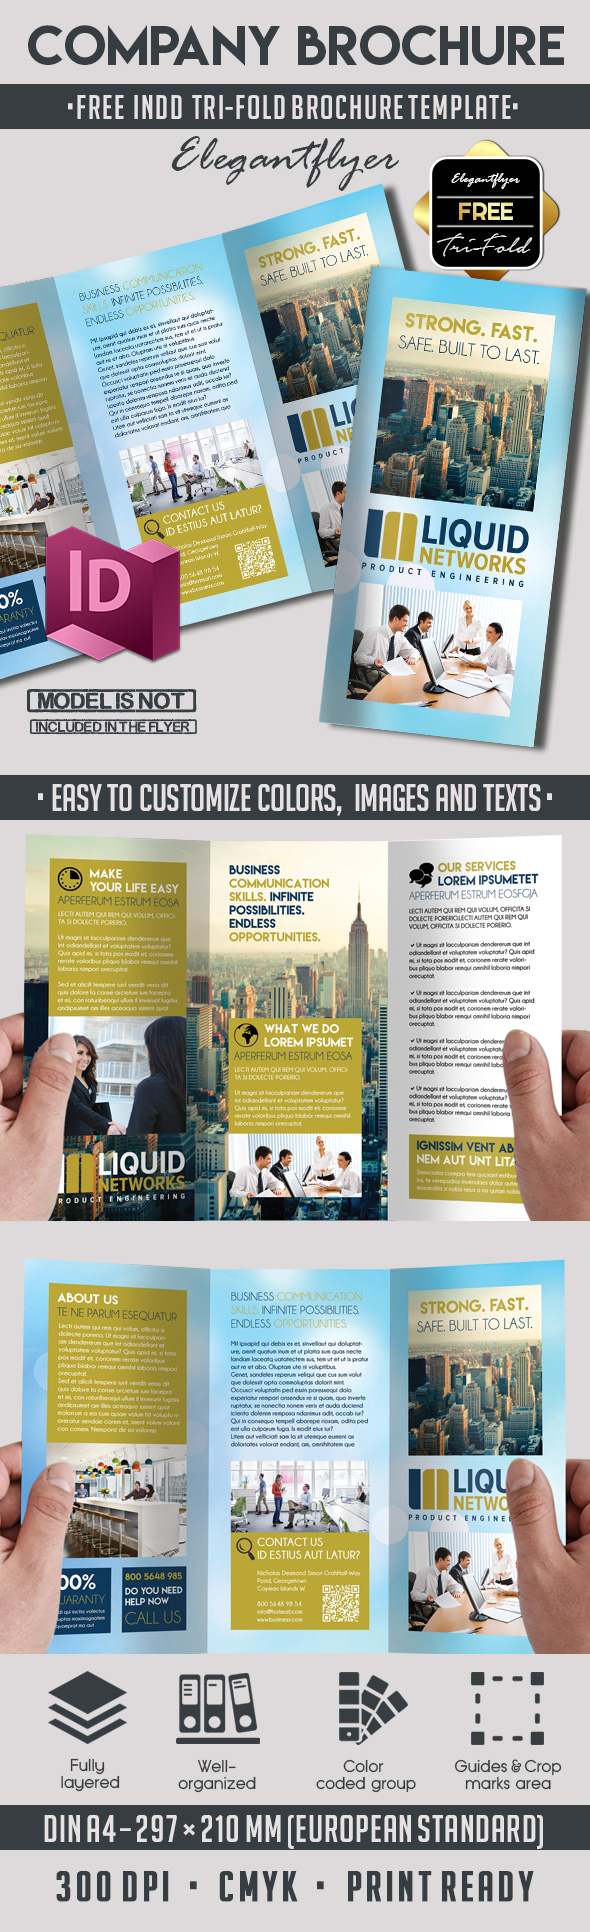 5 powerful free adobe indesign brochures templates by for Free indesign tri fold brochure template